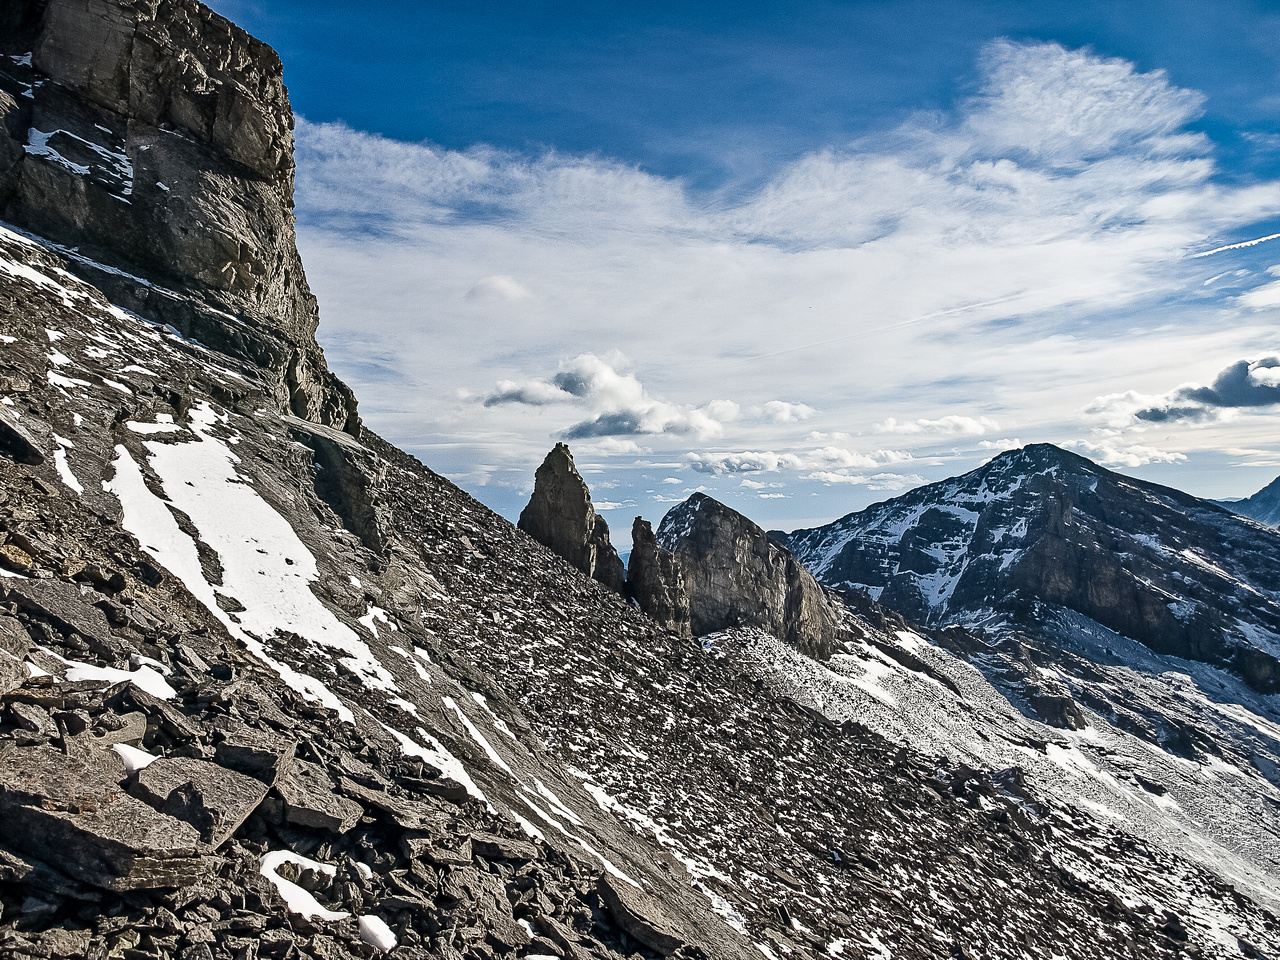 The pinnacles come into view as we round the summit block on the way back.